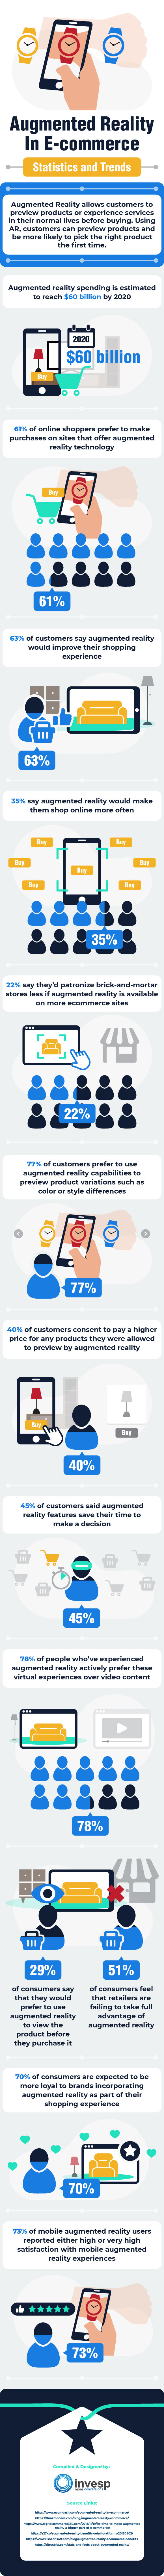 Infographic looks at the use of AR by eCommerce providers